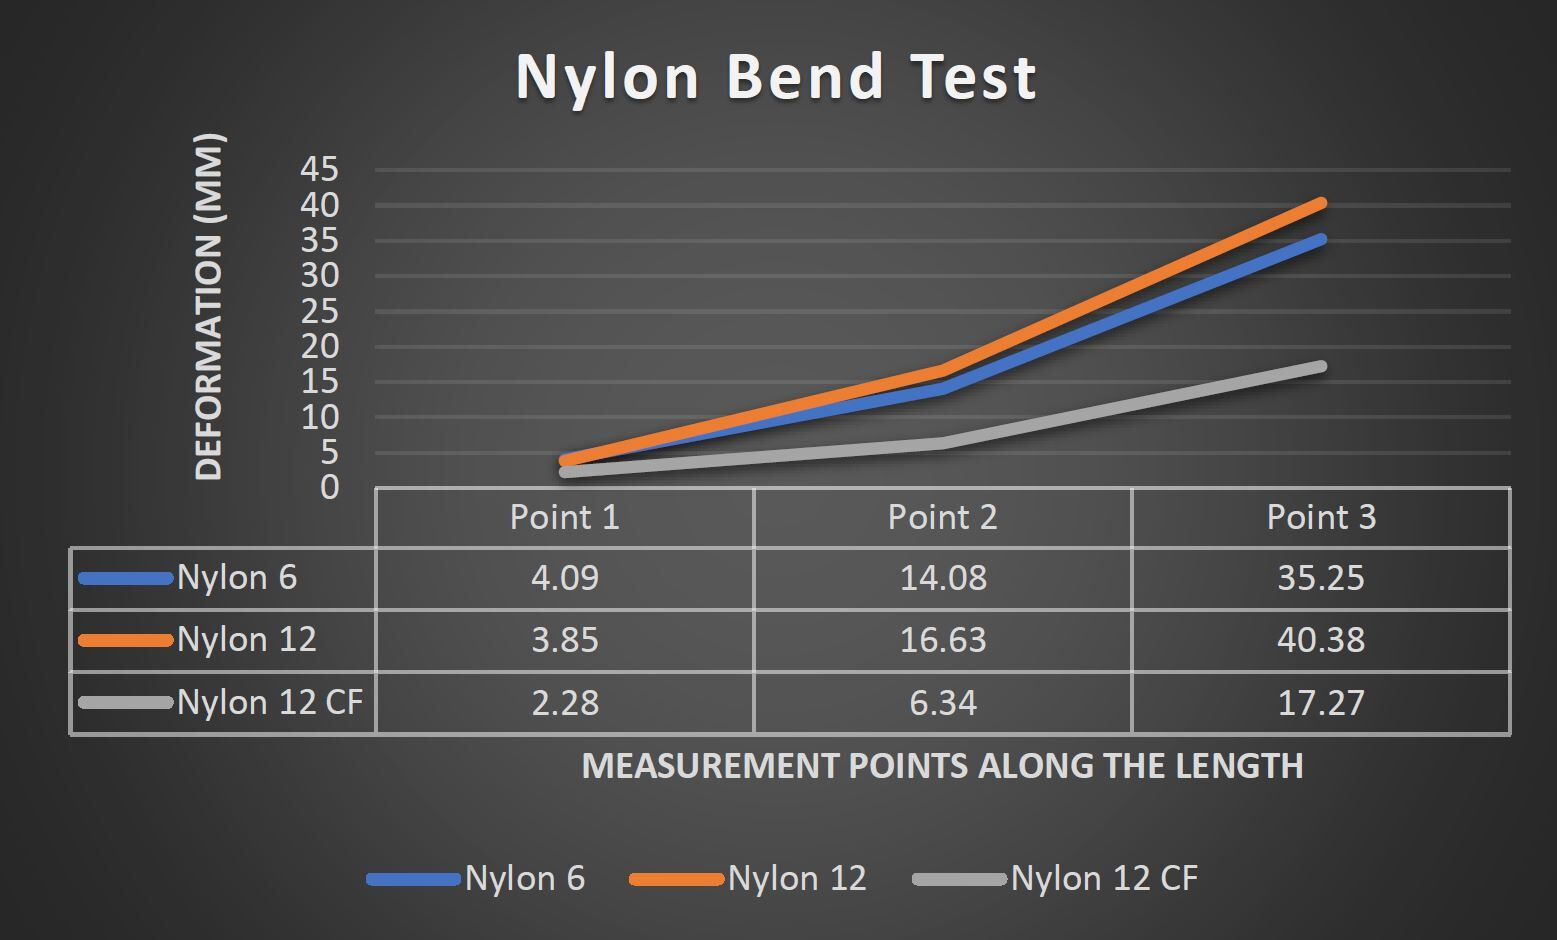 Nylon Bend Test